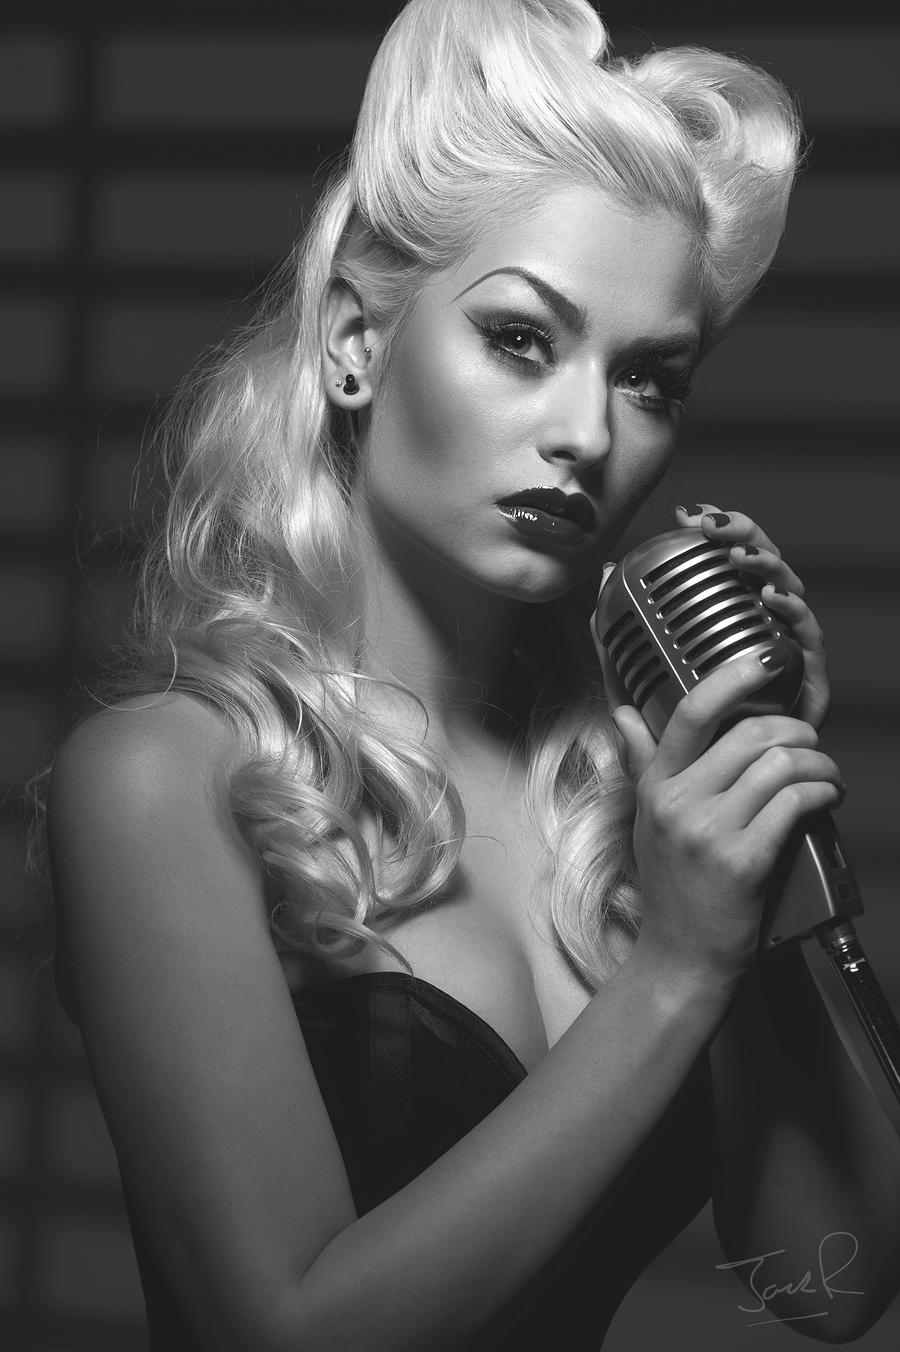 Singing the Blues / Model Romanie Smith, Makeup by Romanie Smith, Taken at Aura Photographic Studio / Uploaded 22nd September 2014 @ 08:20 AM